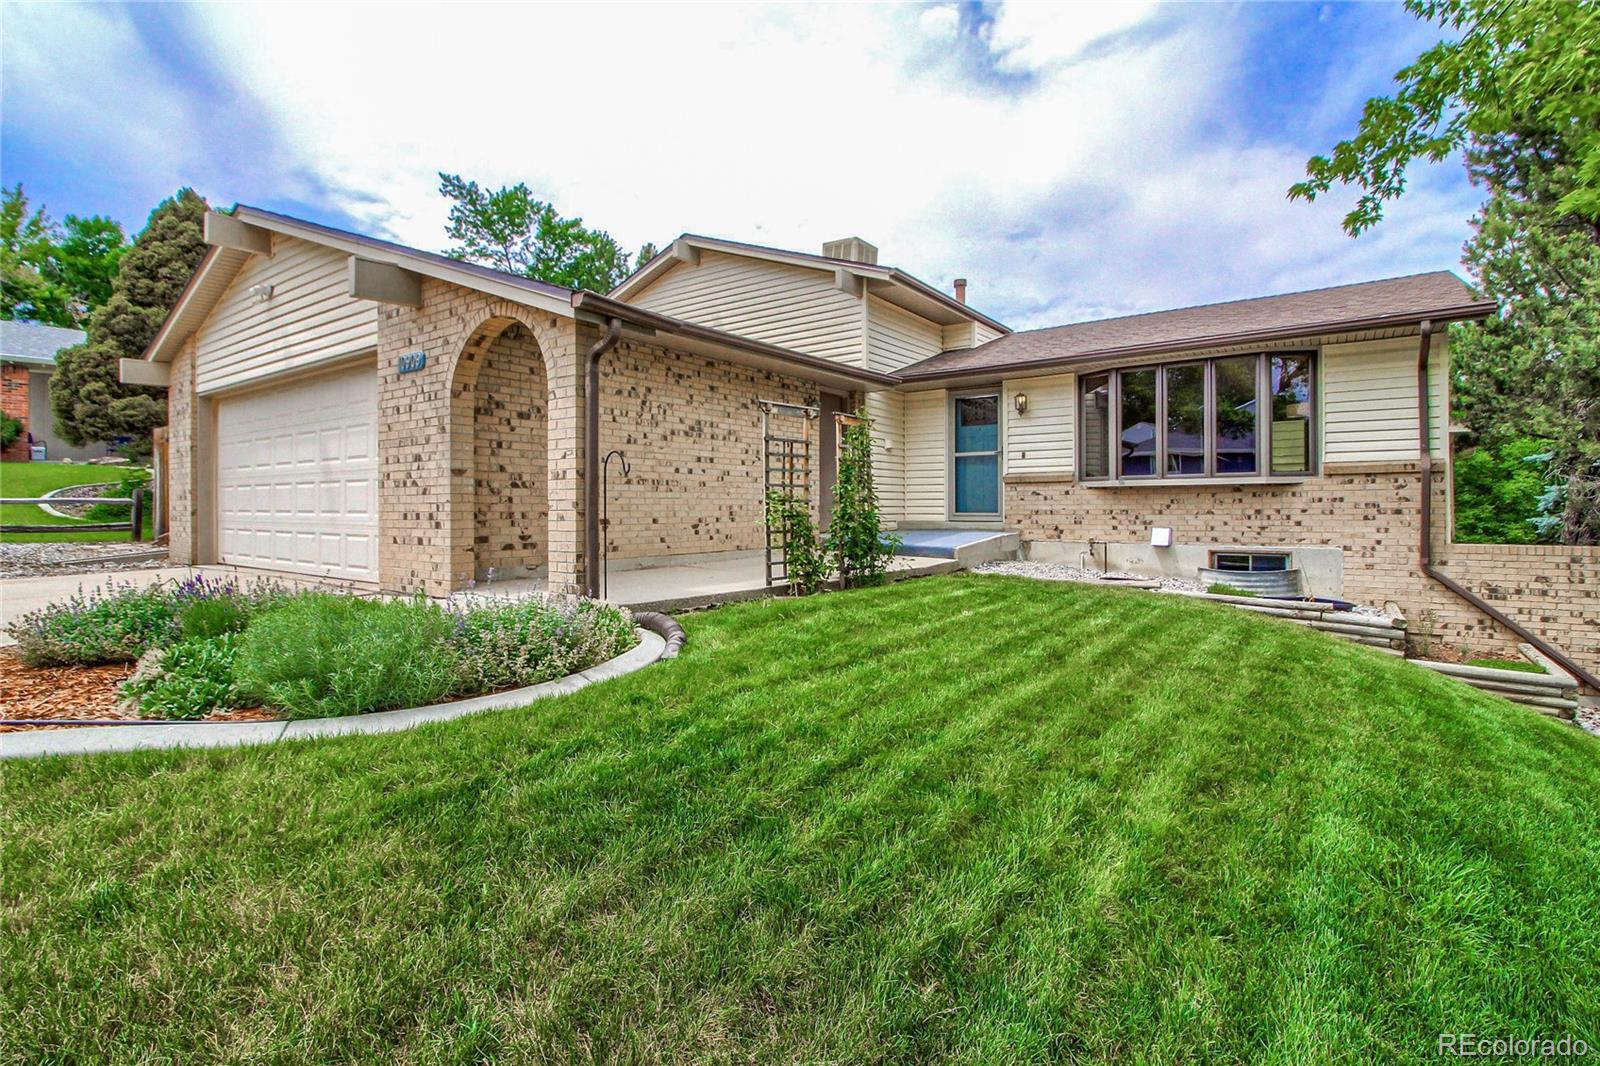 10909 W 65th Way Property Photo - Arvada, CO real estate listing